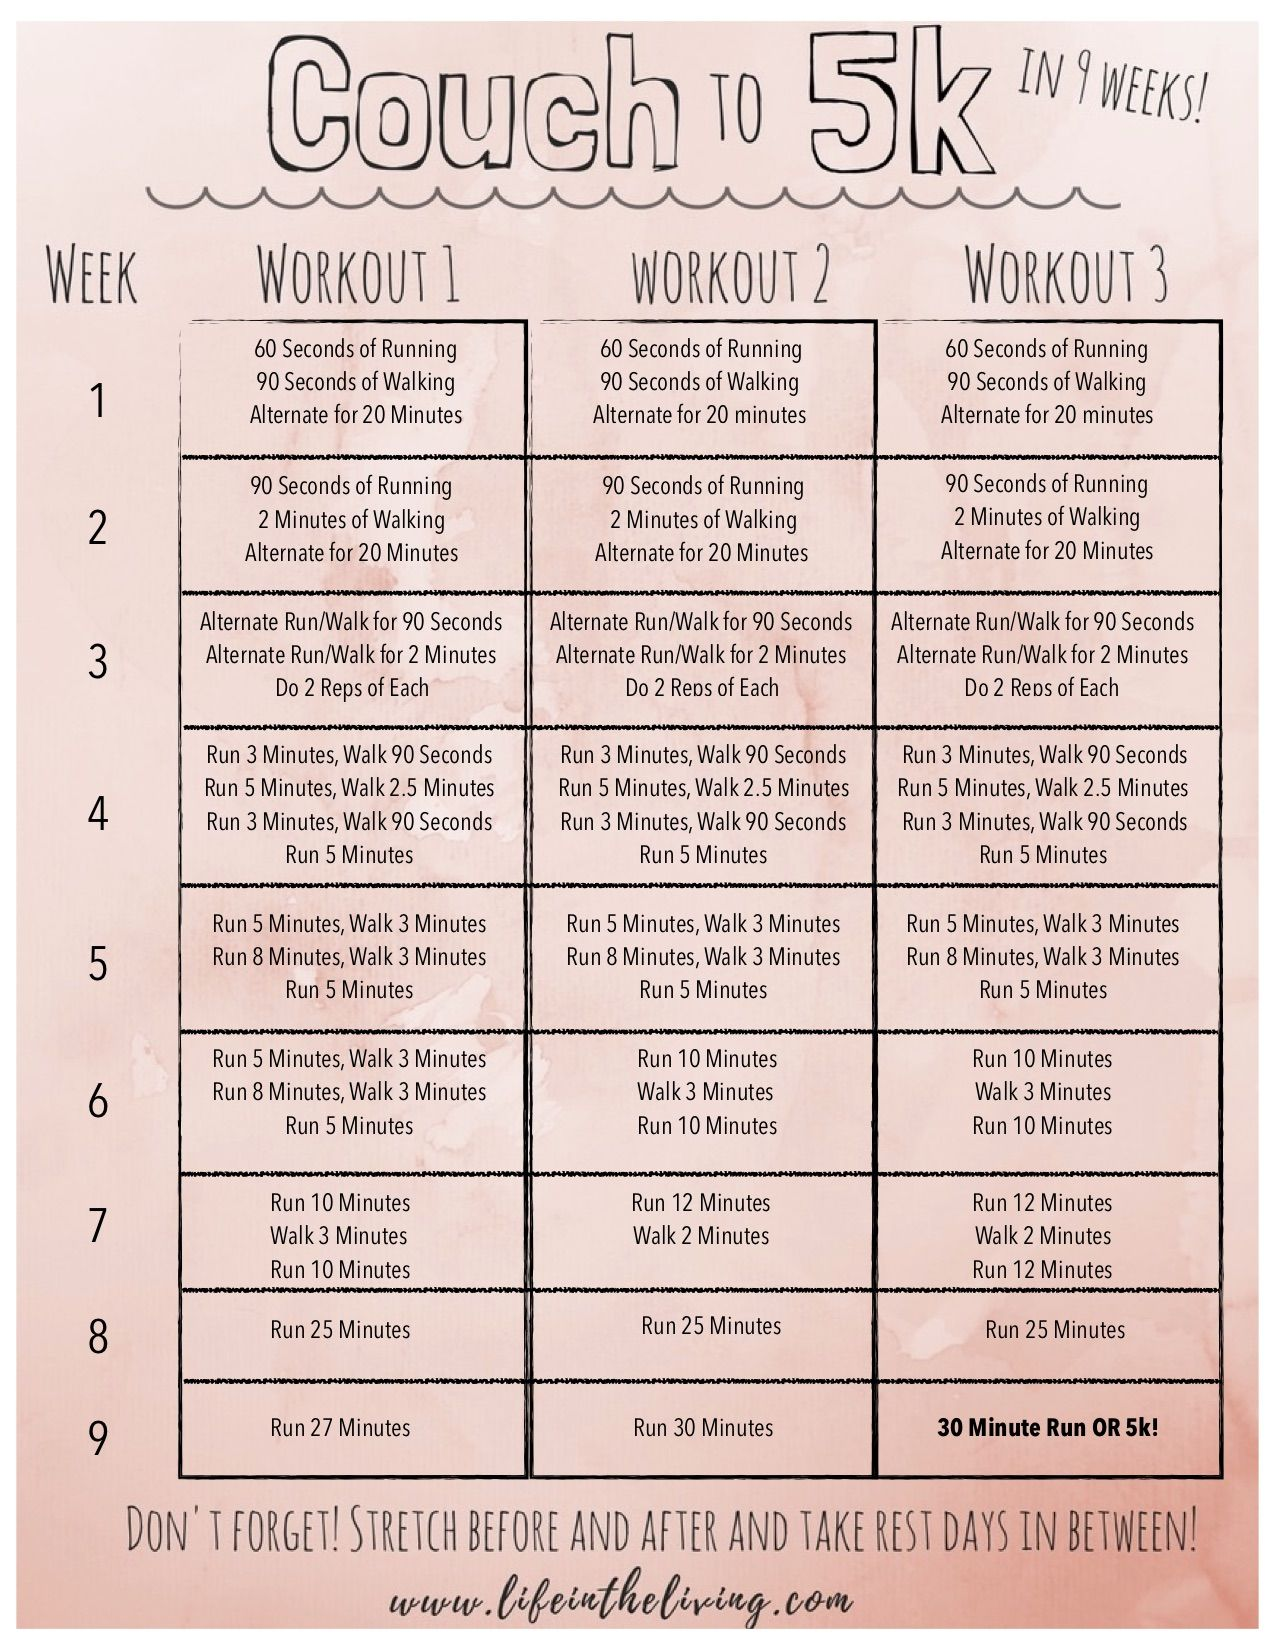 Free Couch To 5k Printable This Program Will Take You From The